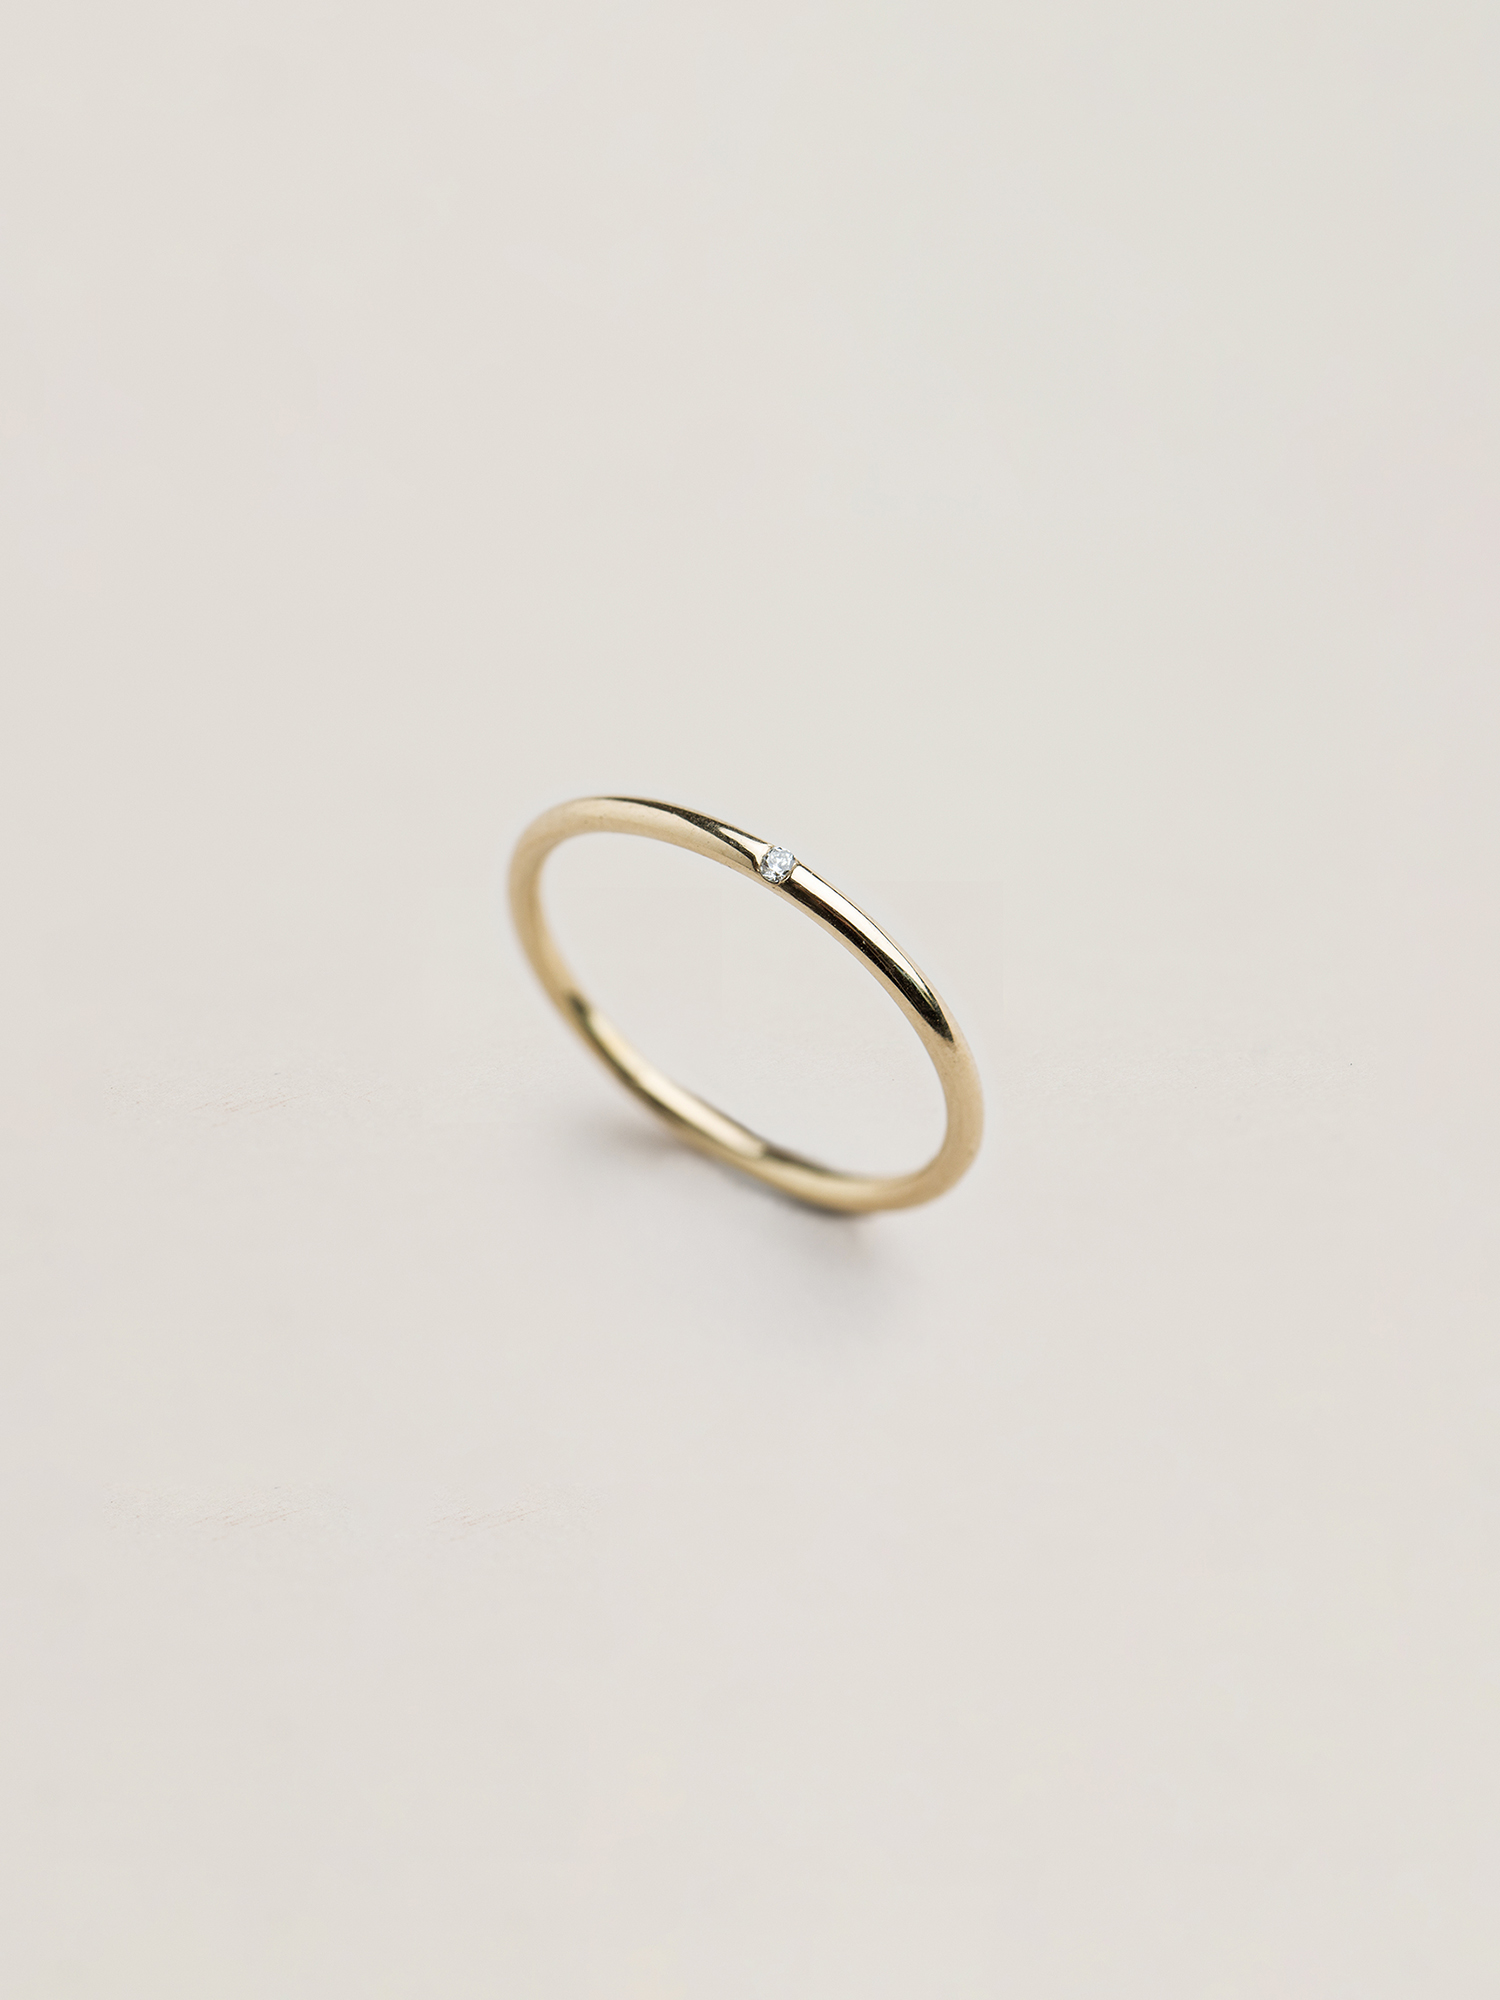 Christina-Pauls-Ring-zierlich-Diamant-Gold1.jpg